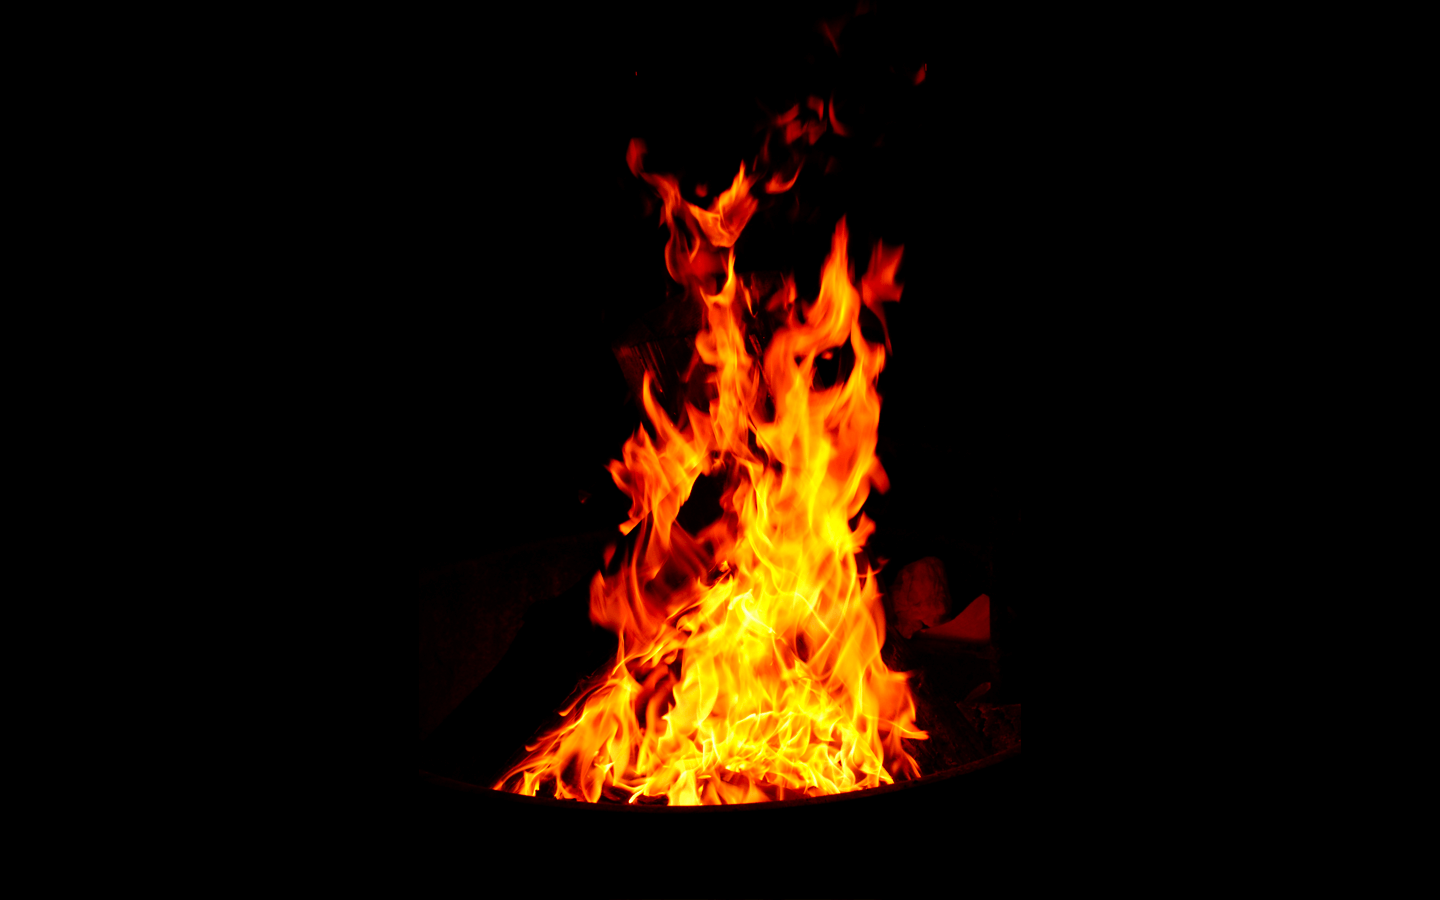 Fire Images On Black Backgrounds Wallpaper Cave